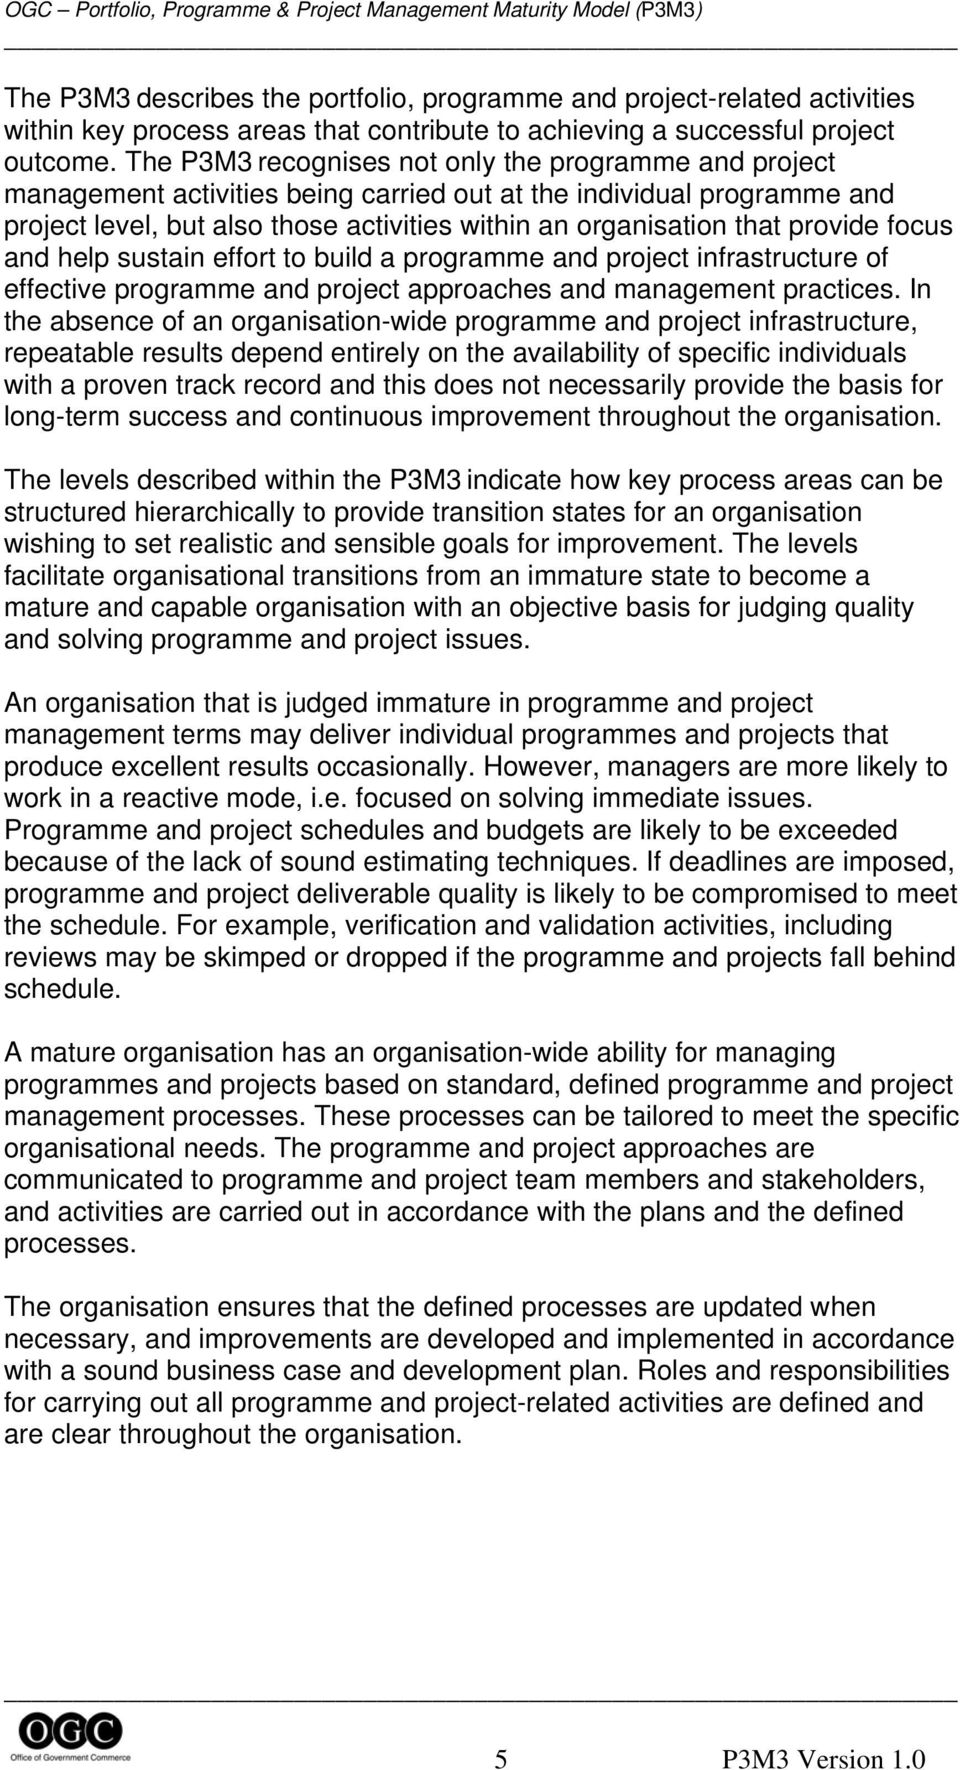 provide focus and help sustain effort to build a programme and project infrastructure of effective programme and project approaches and management practices.